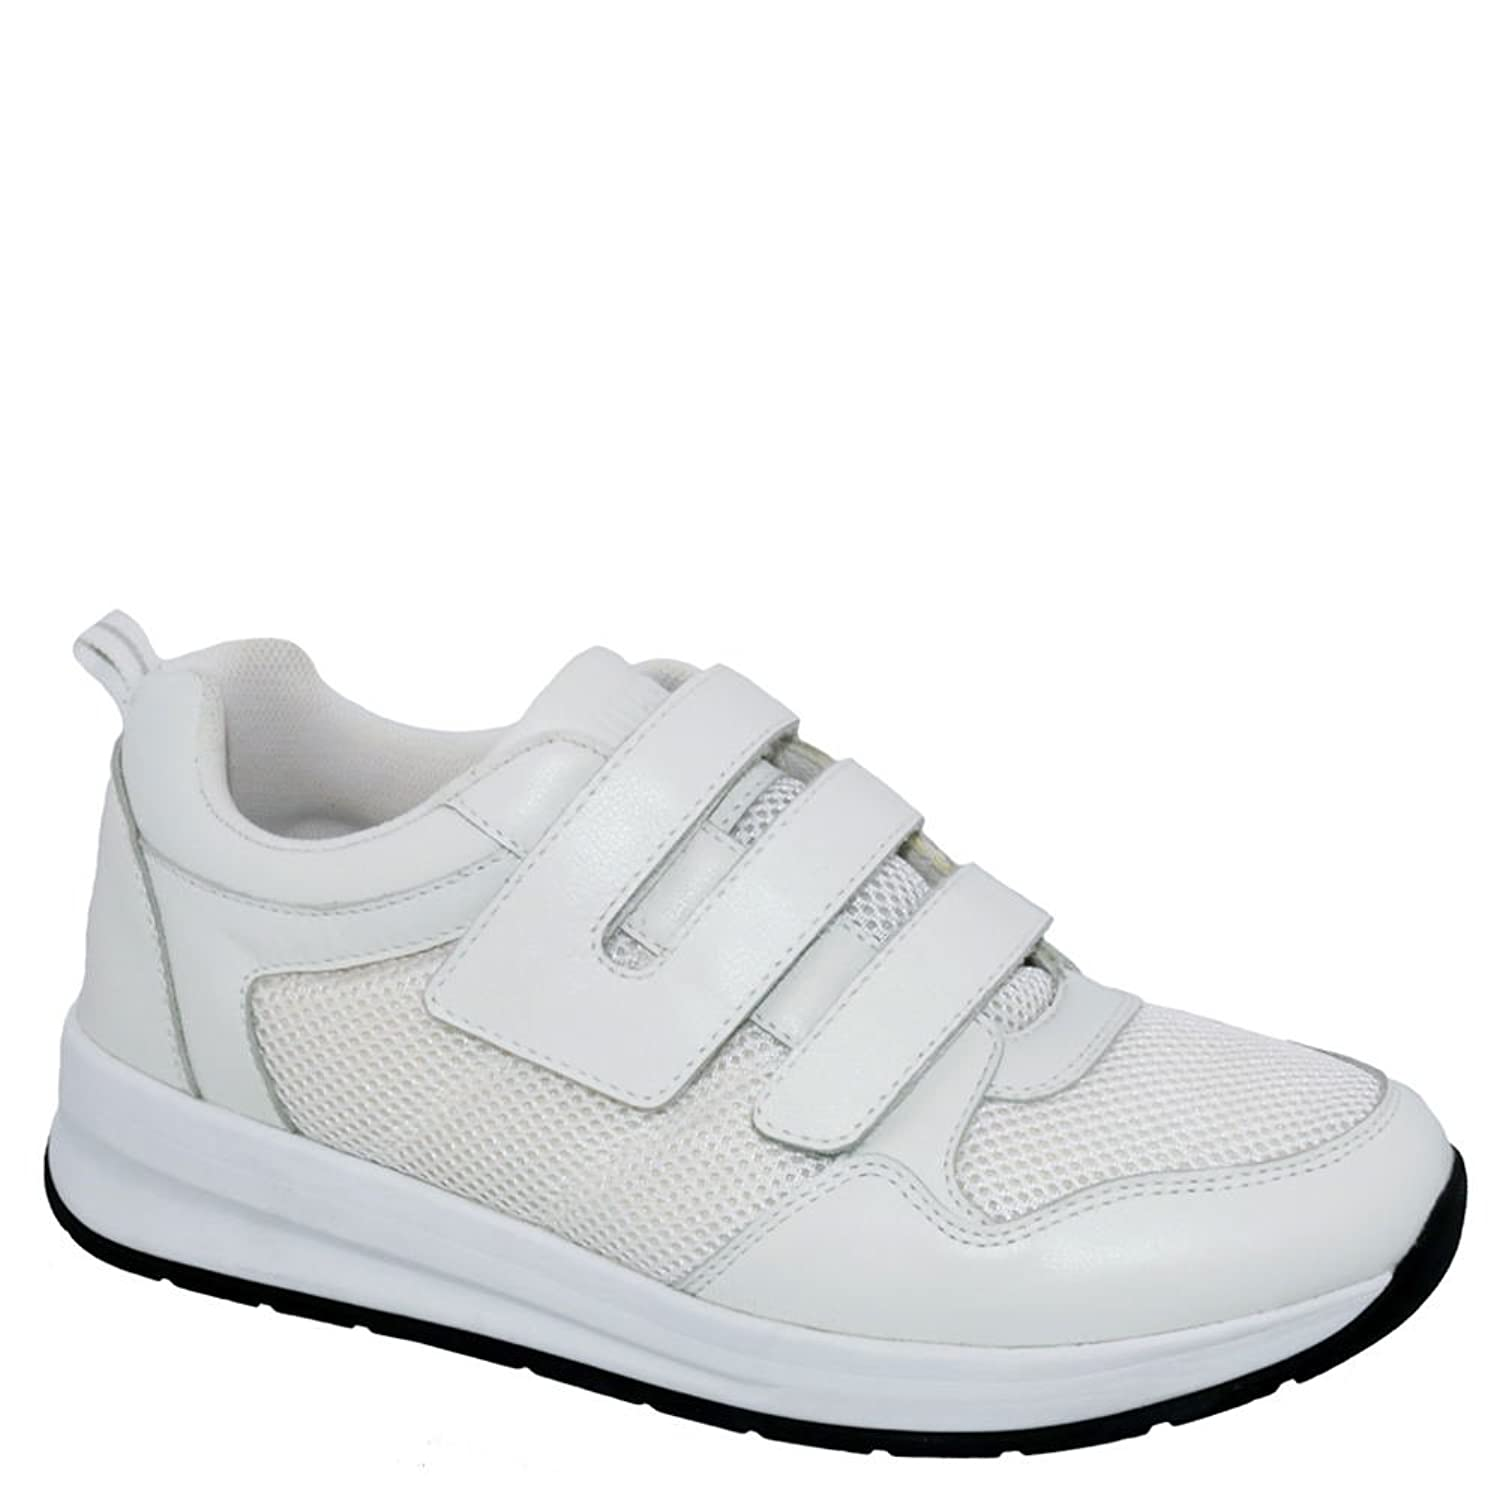 Drew Shoe メンズ 44991 B07B3ZN6KT  White/Combo 11.5 2E US Men